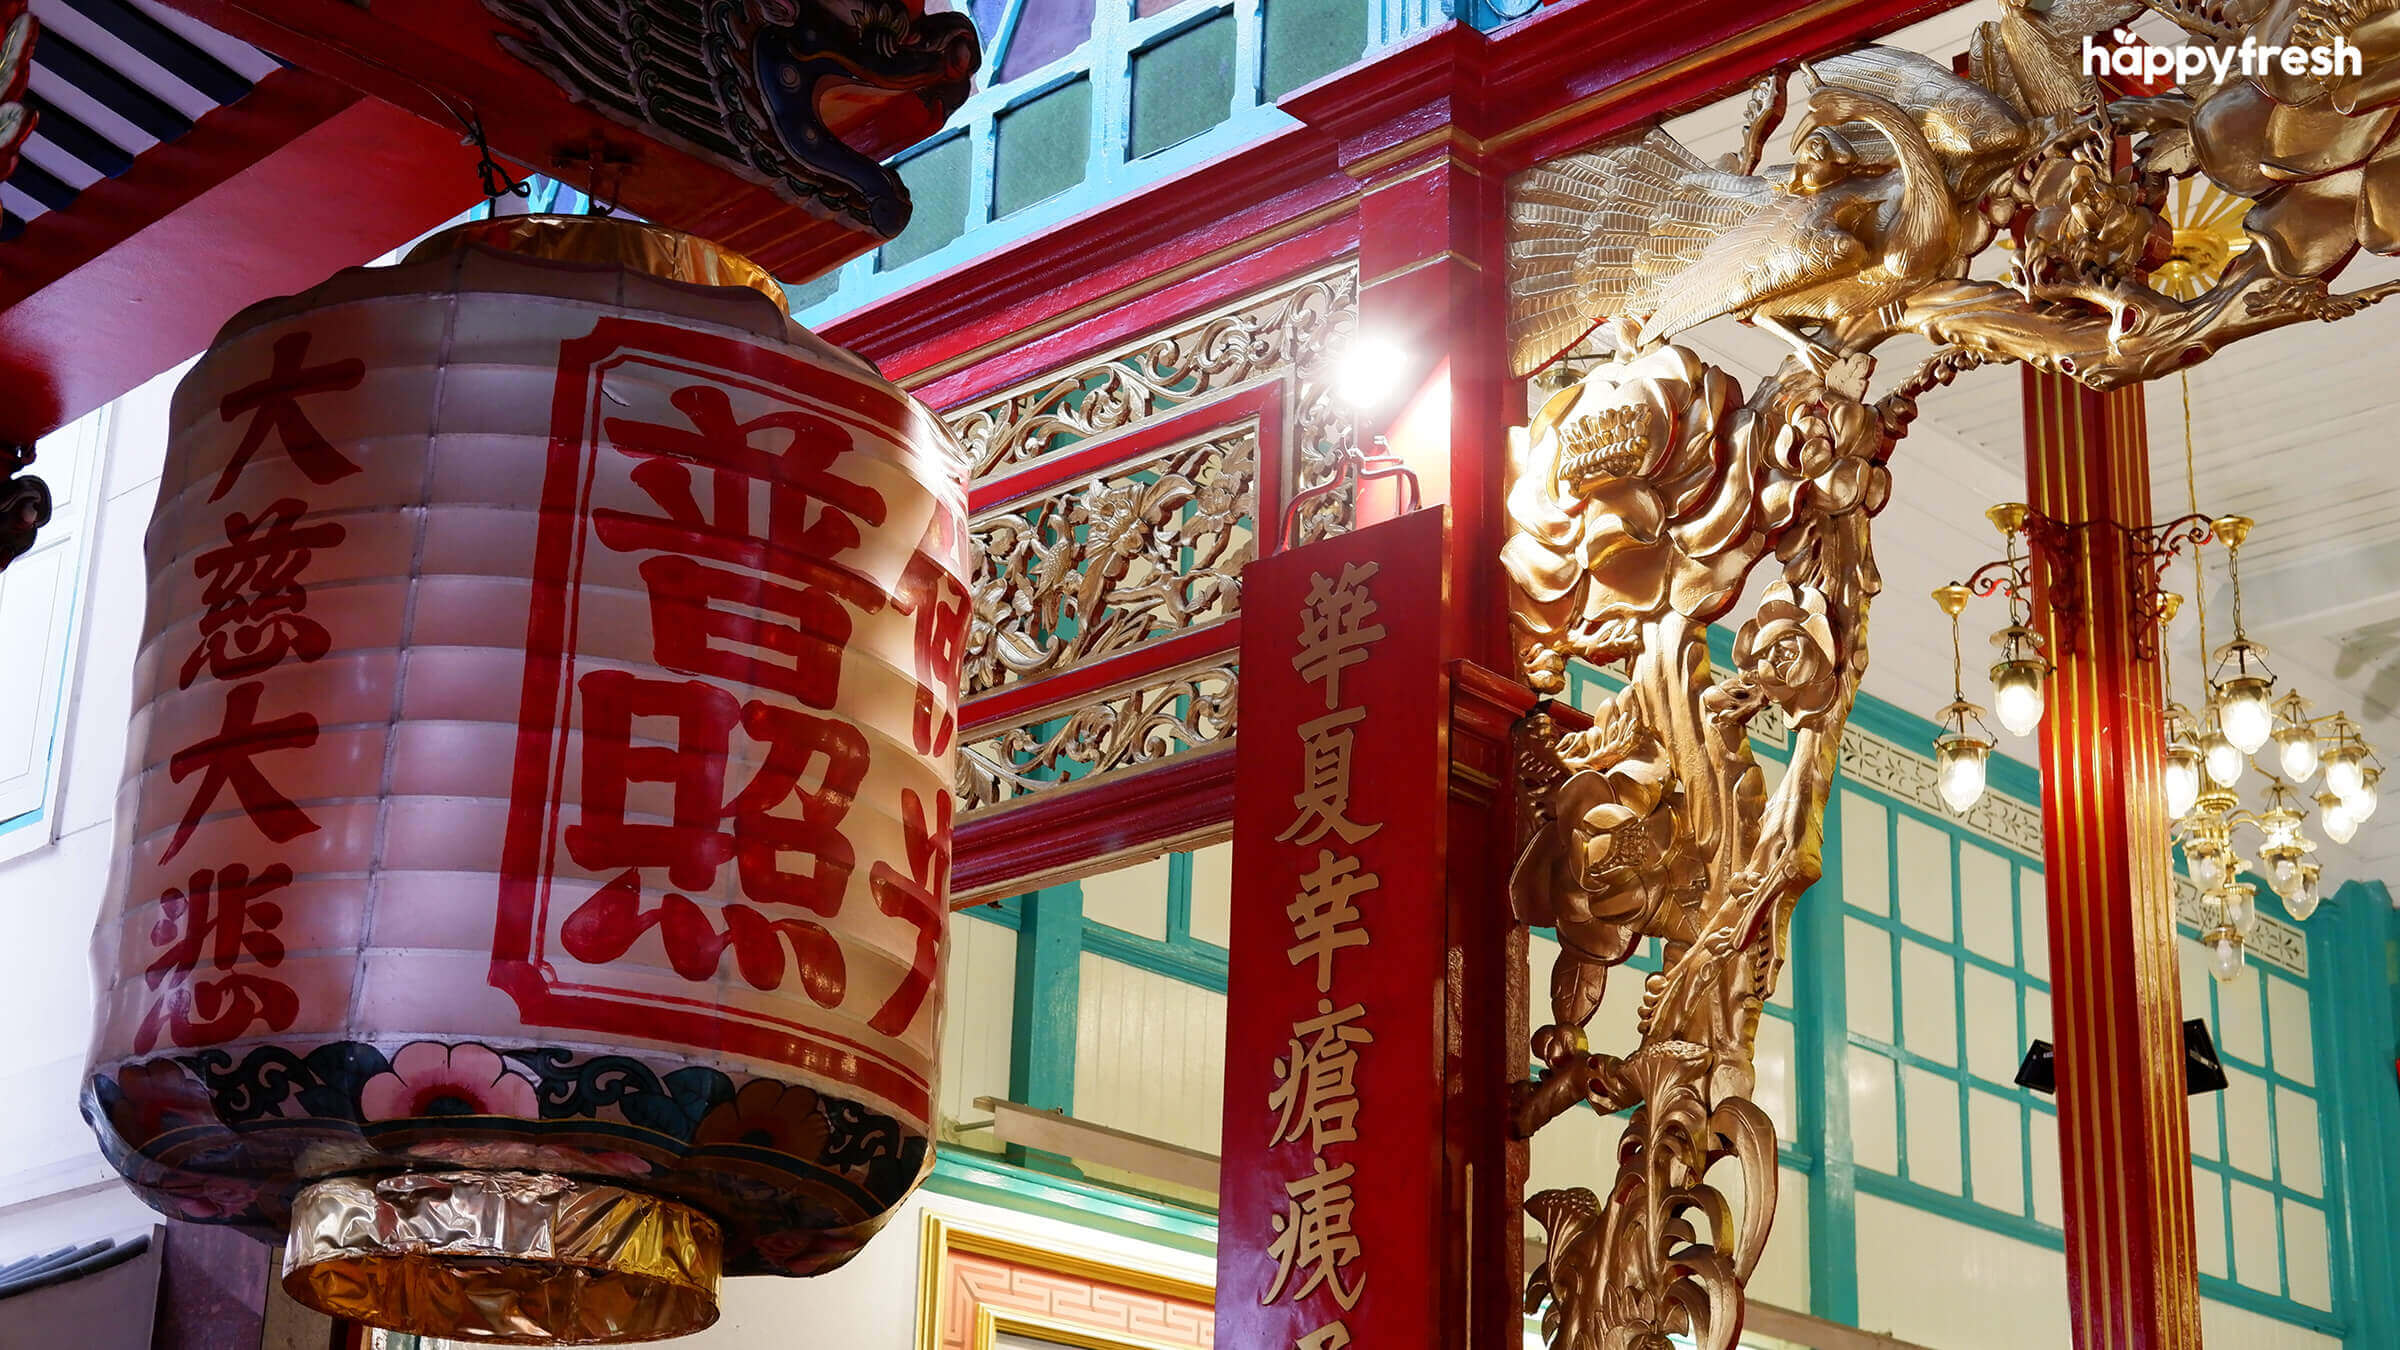 HappyFresh_Visit_6_Chinese_Shrines_In_Chinatown_Kuan_Yim_Shrine_4